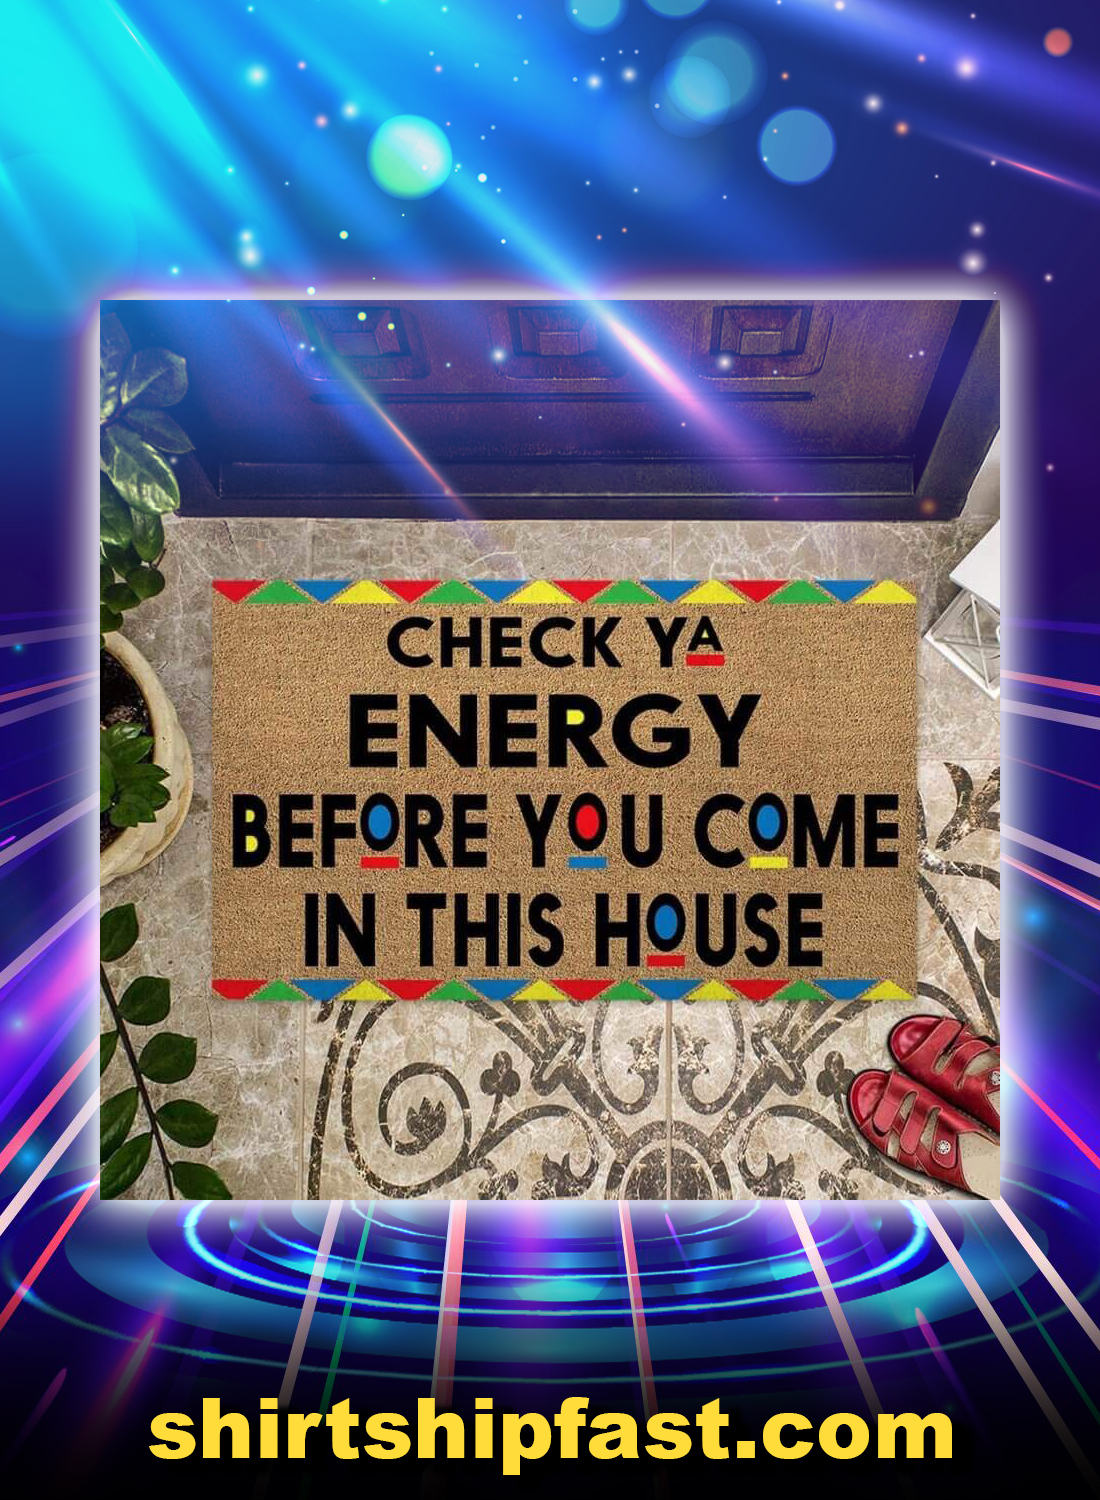 Check ya energy before you come in this house doormat - Picture 1